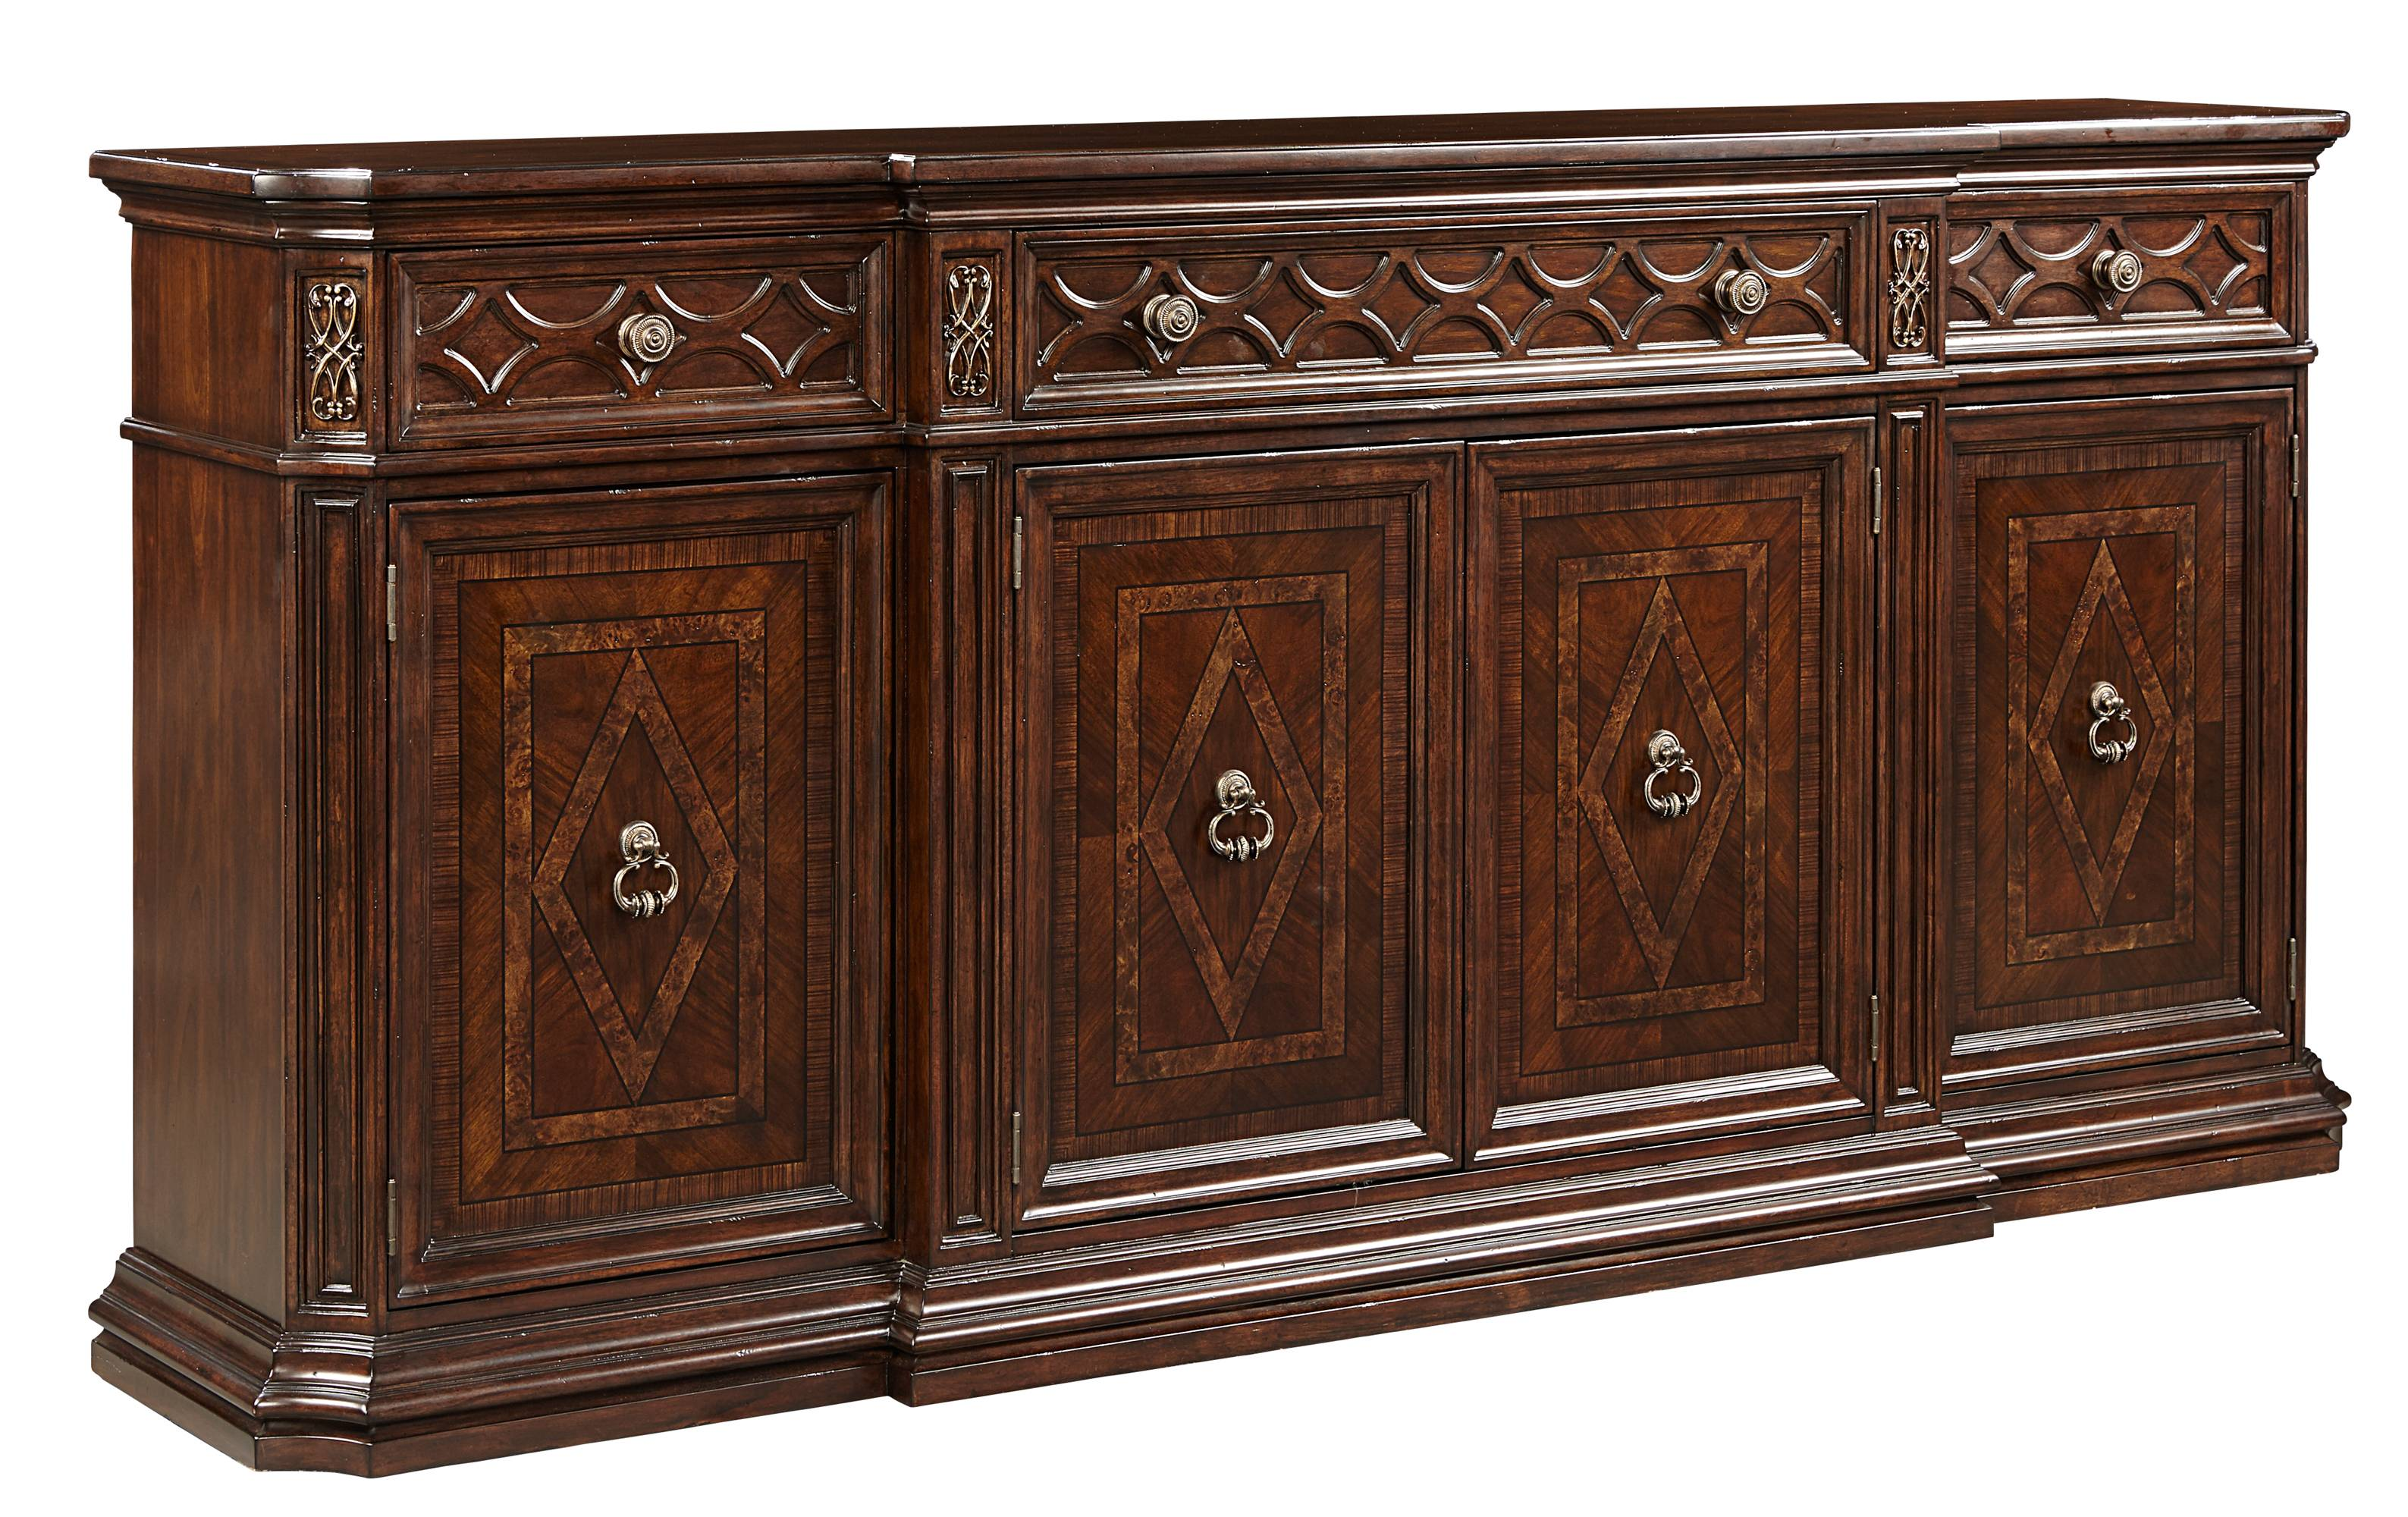 Stanley Furniture Casa D'Onore Buffet - Item Number: 443-11-05